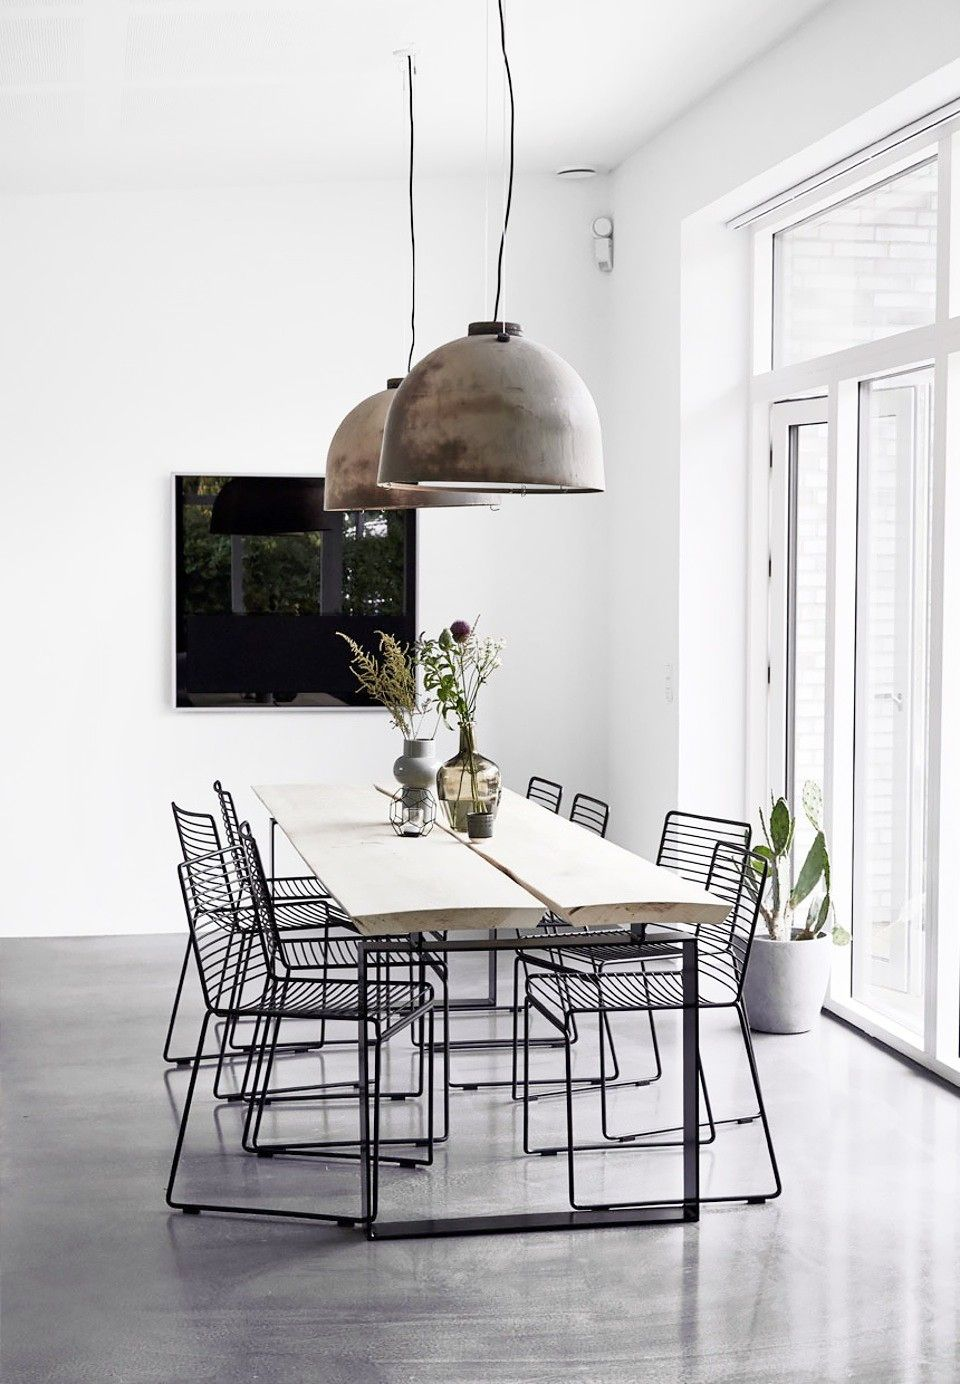 Pinterest's Most Popular Home Décor Trends Of 2016  Modern Room Magnificent Wire Dining Room Chairs Design Decoration